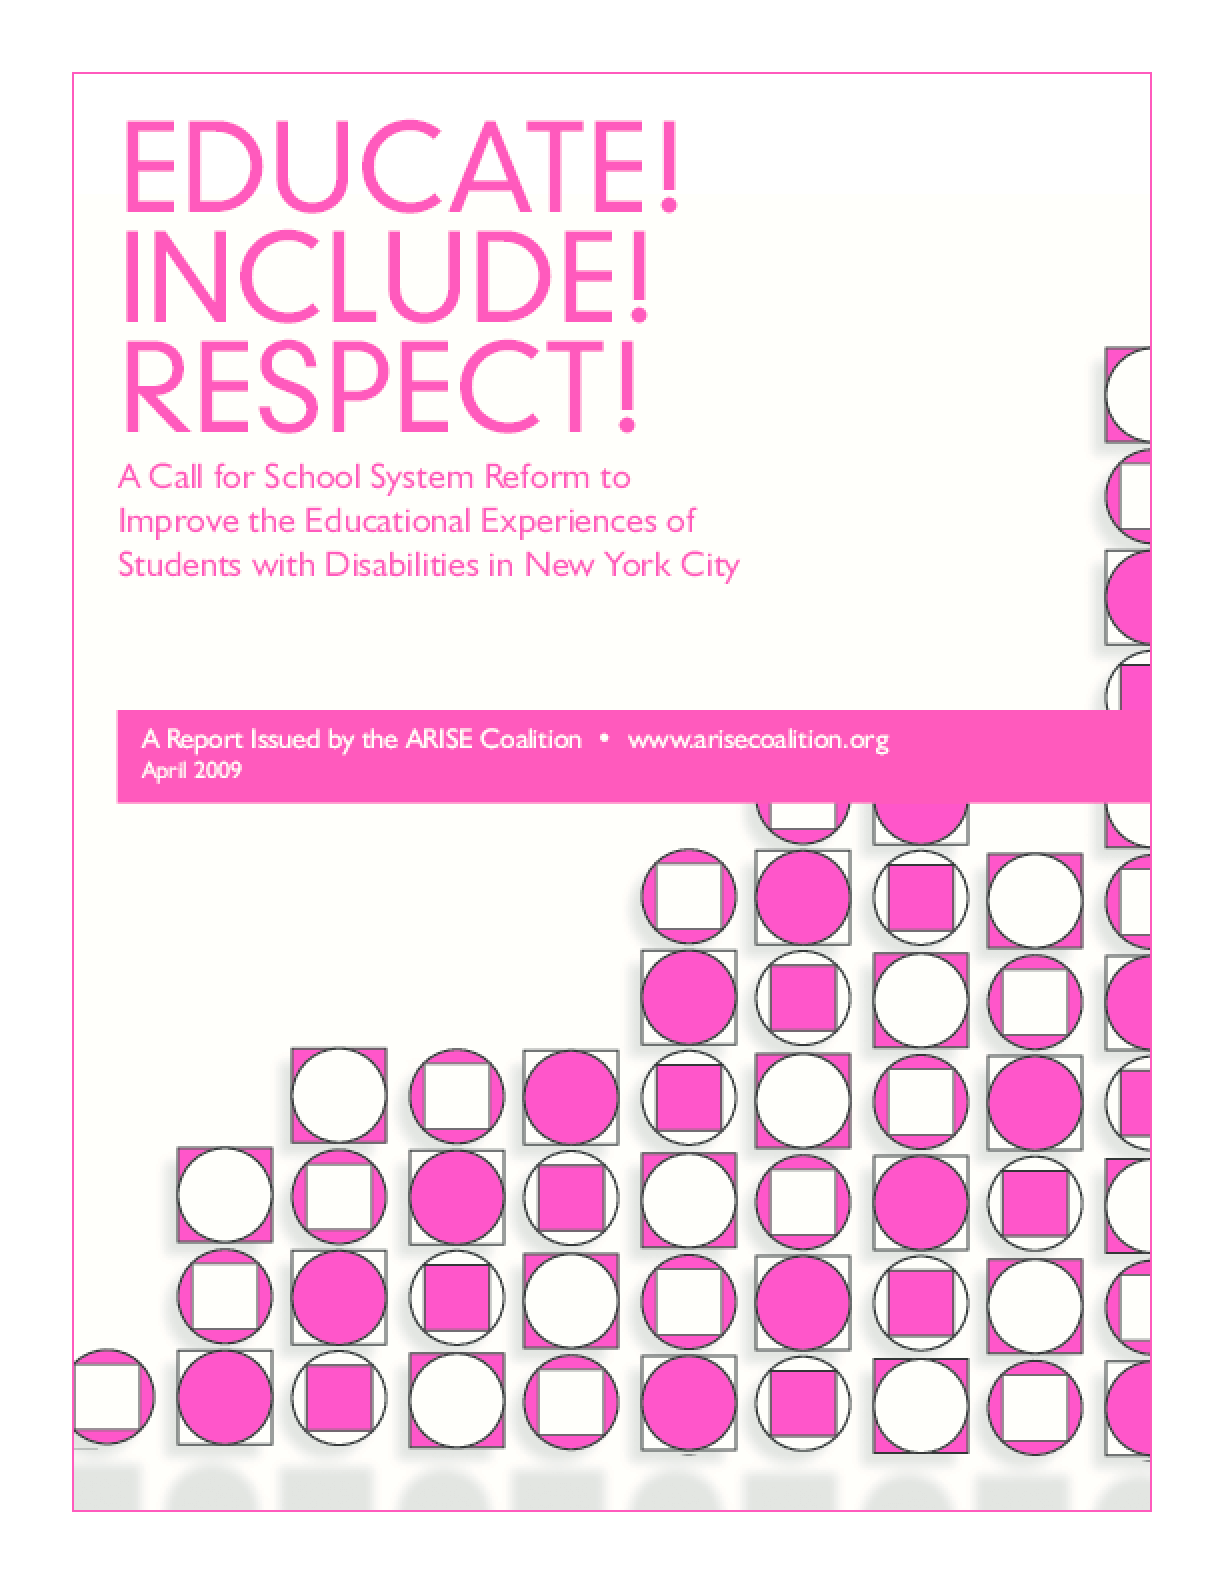 Educate! Include! Respect! A Call for School System Reform to Improve the Educational Experiences of Students with Disabilities in New York City